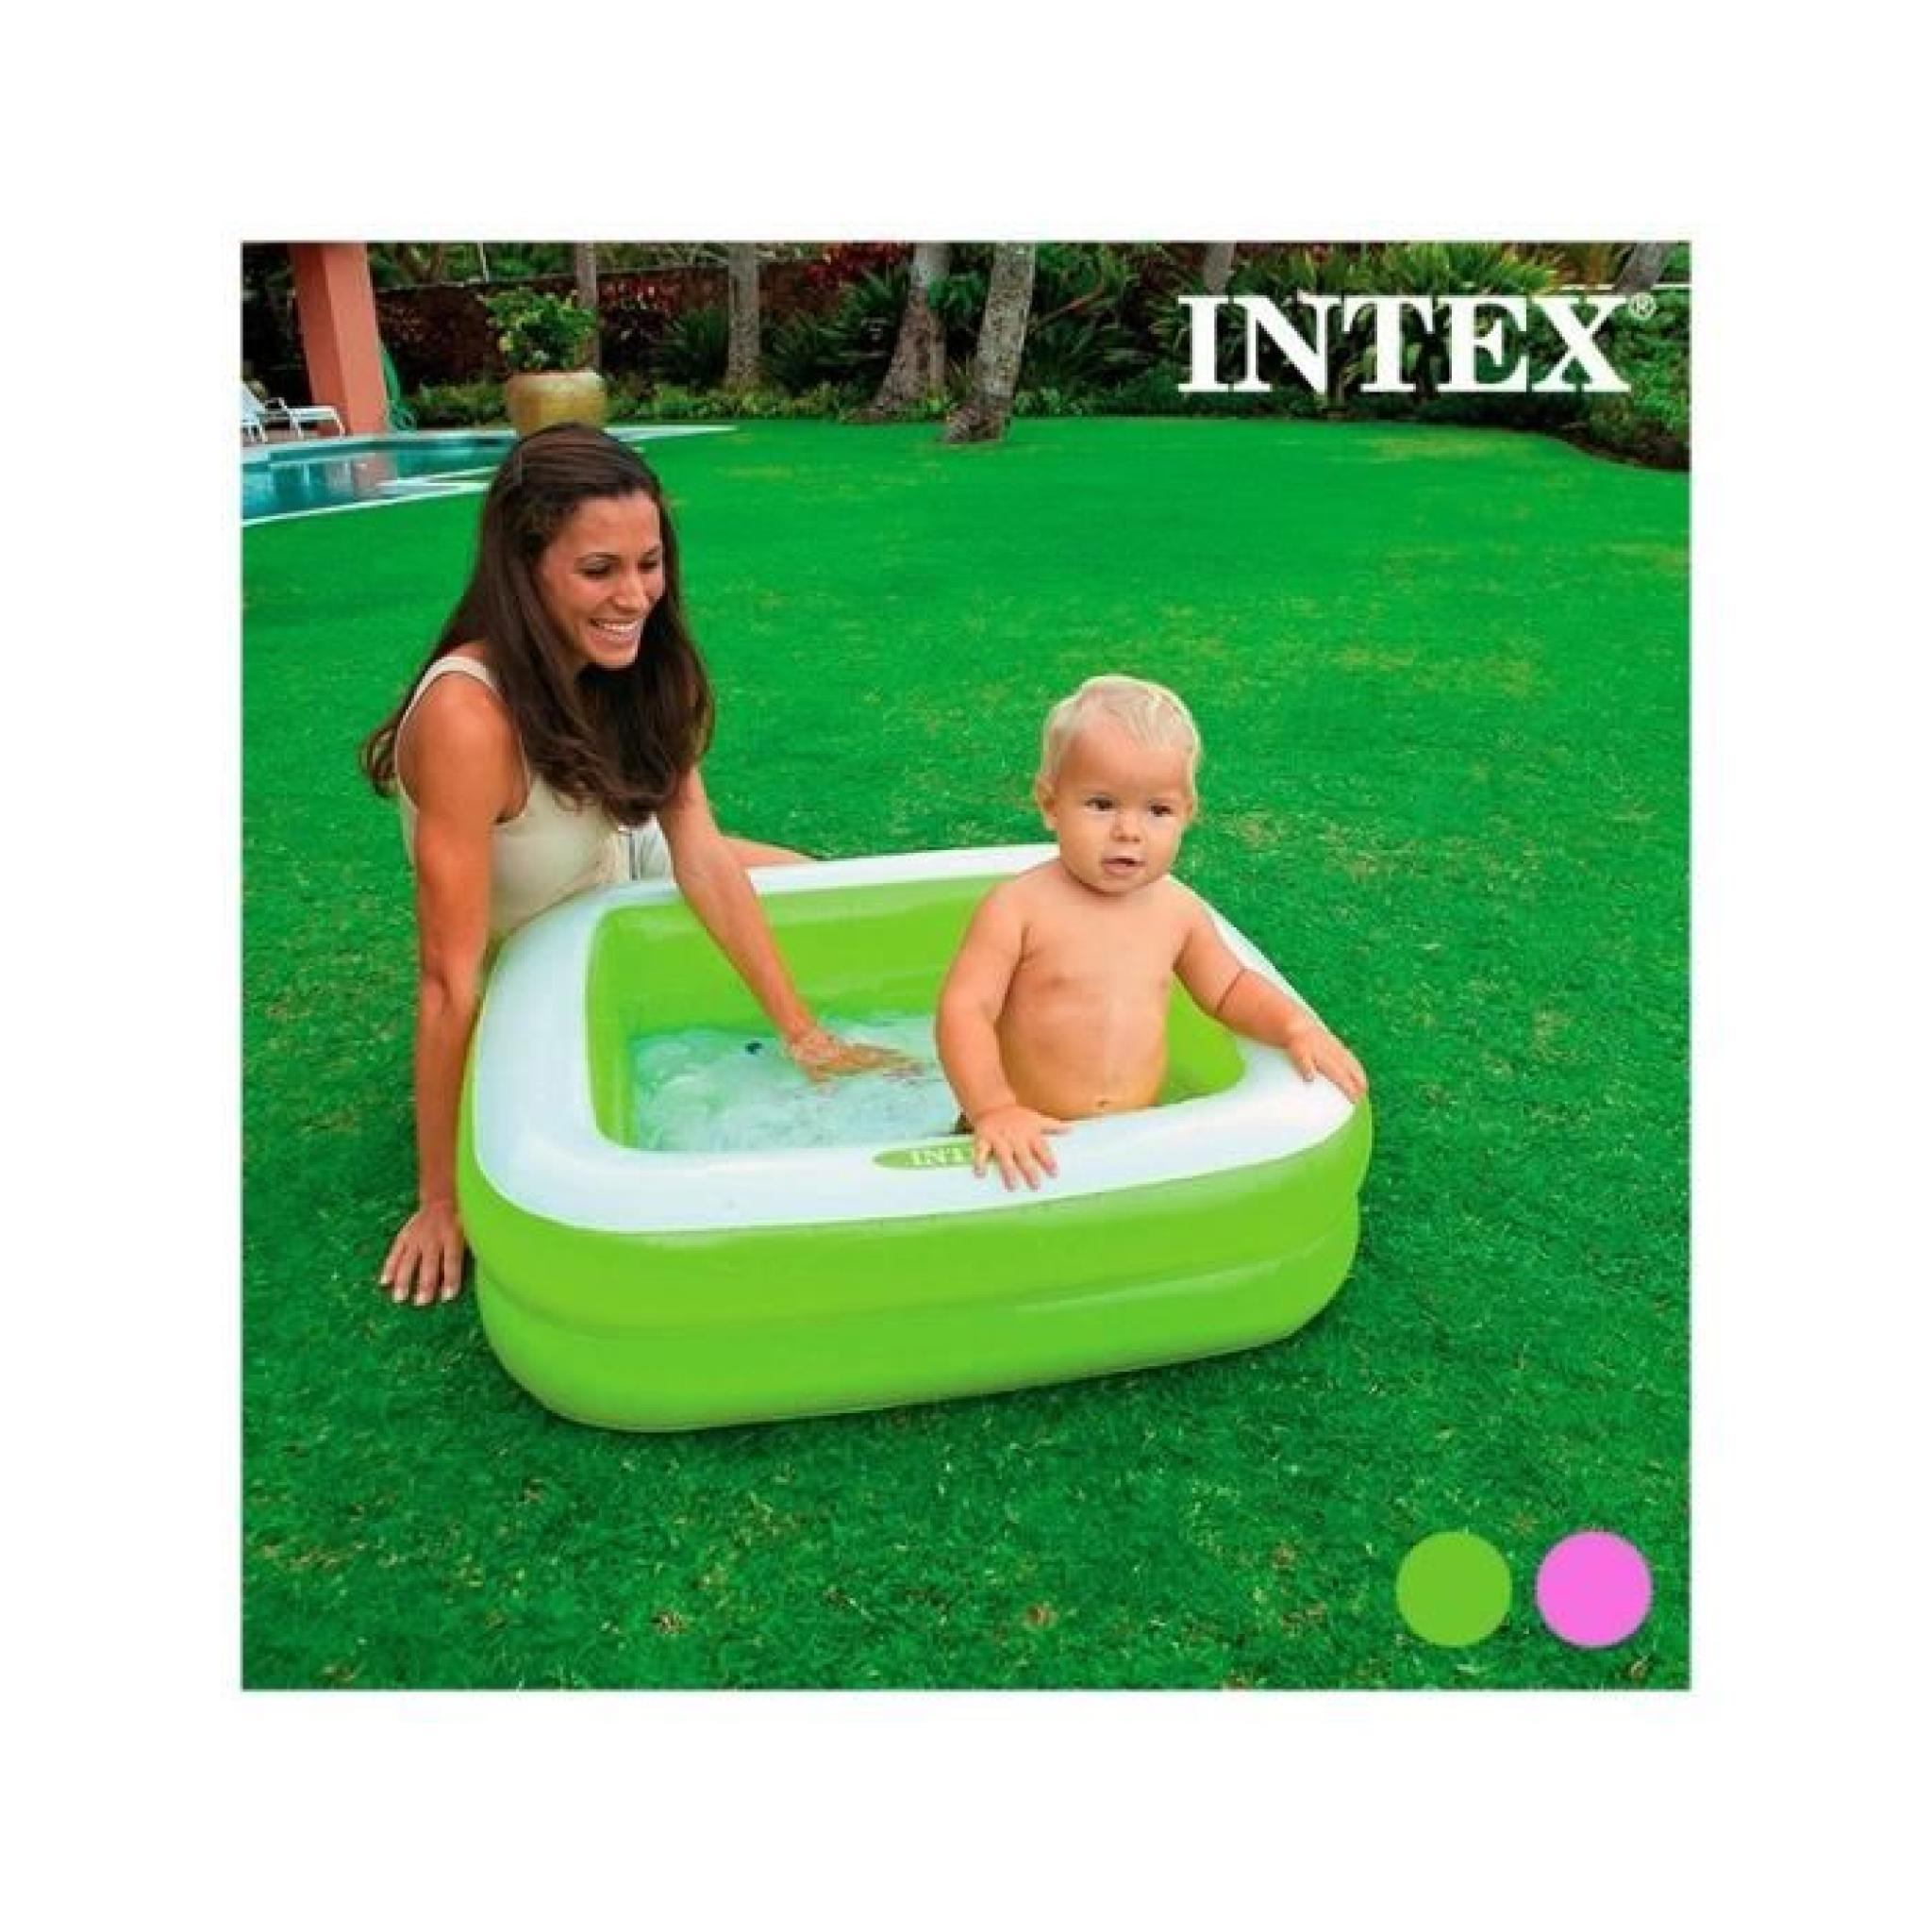 Piscine gonflable carr e pour enfants intex rose for Rustine pour piscine intex